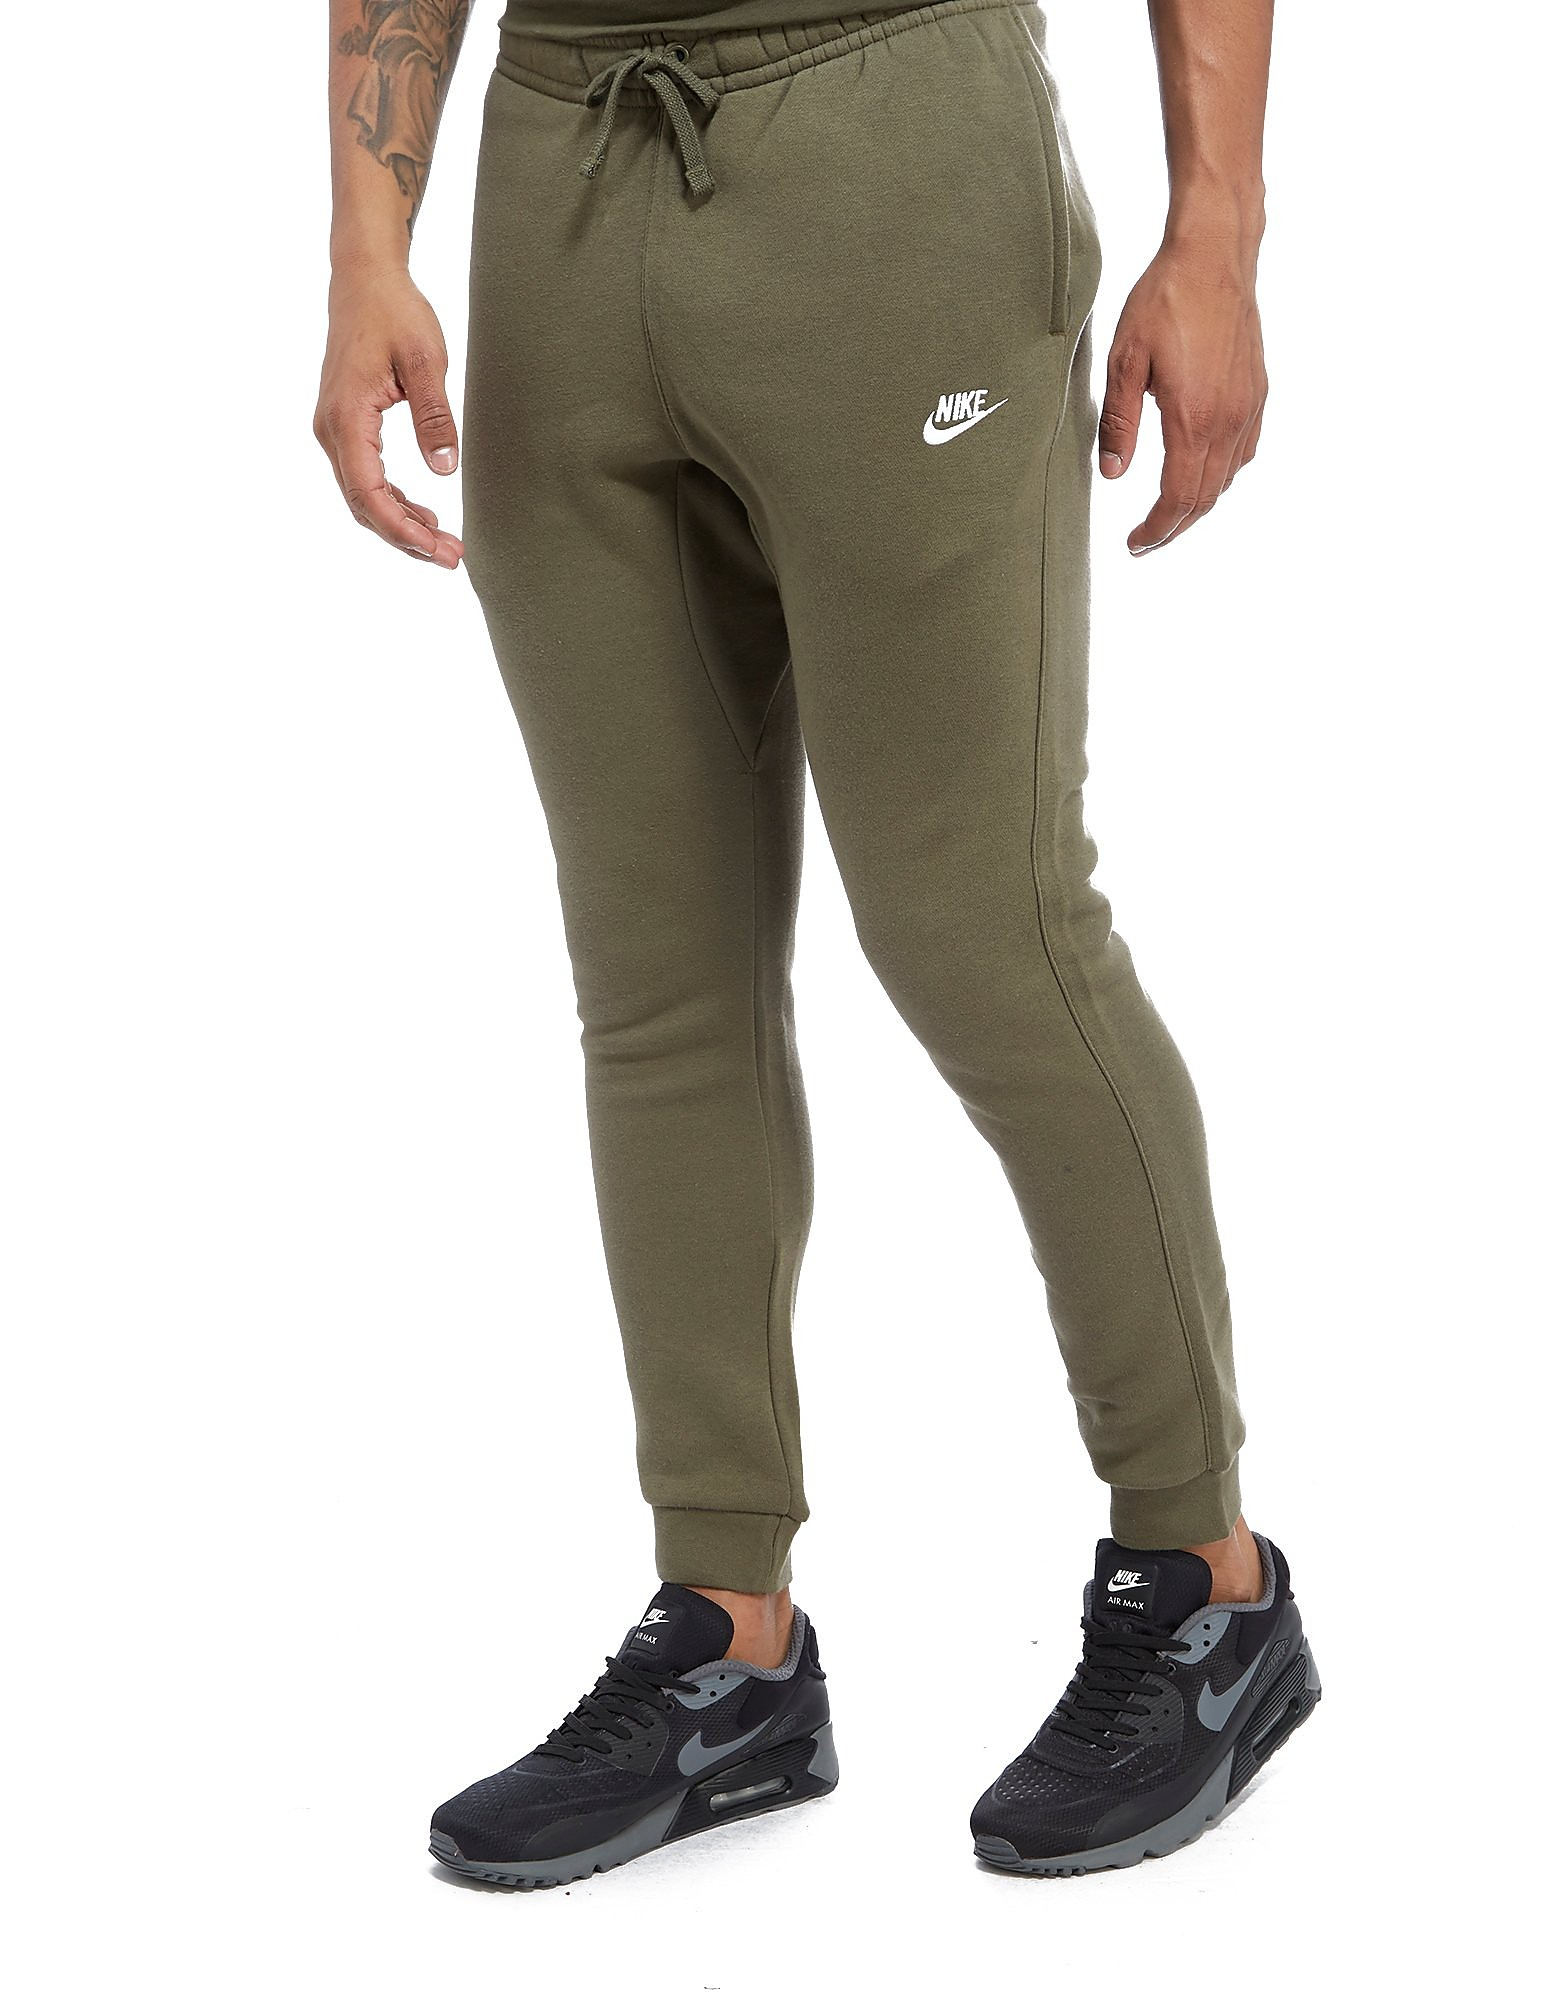 Nike Foundaton DC Fleece Pants